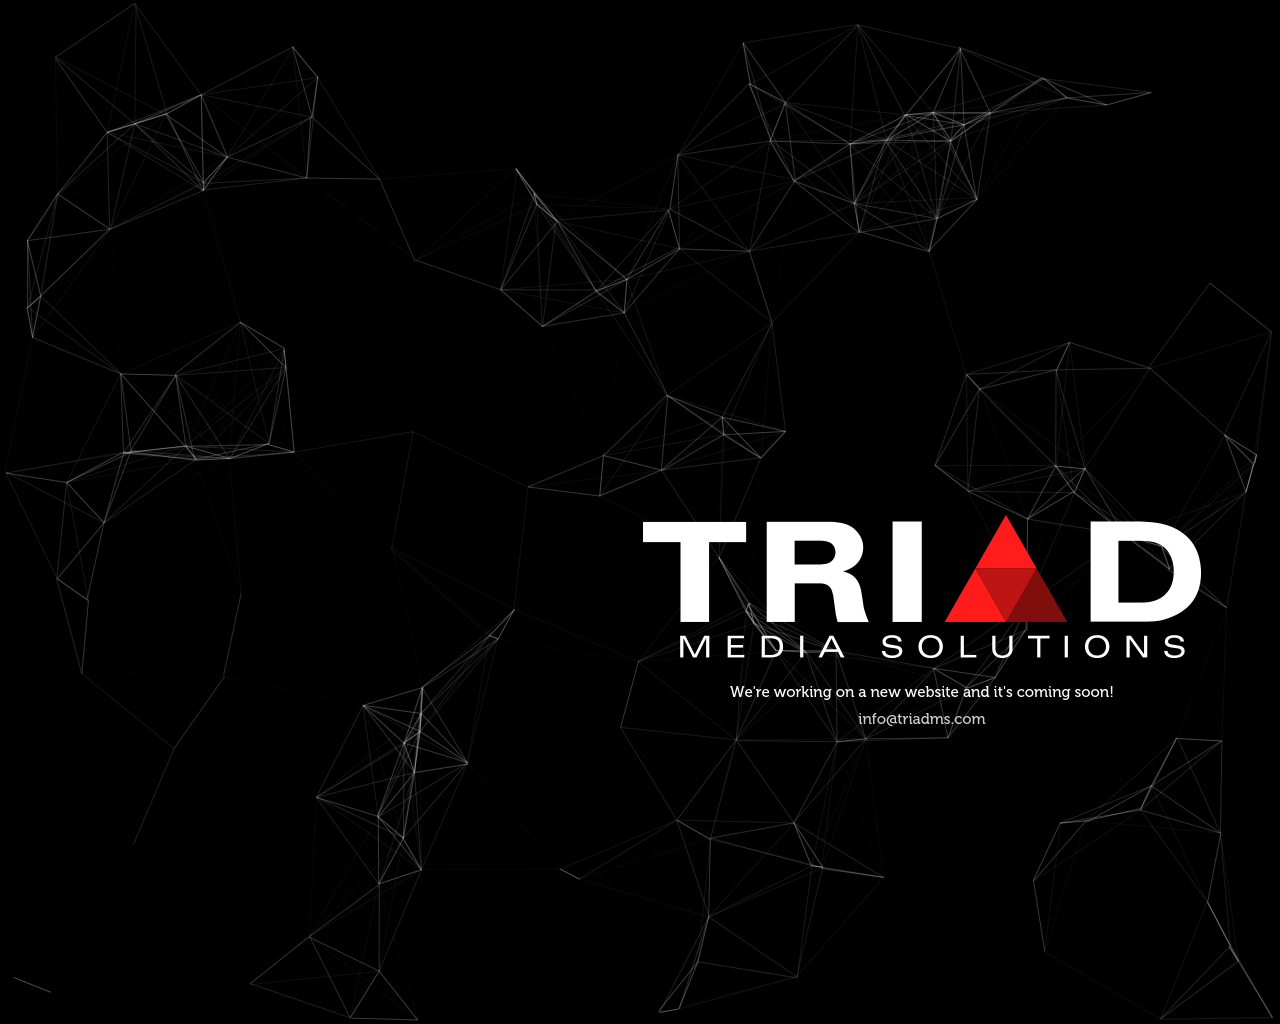 TriAd-Media-Solutions-Advertising-Reviews-Pricing